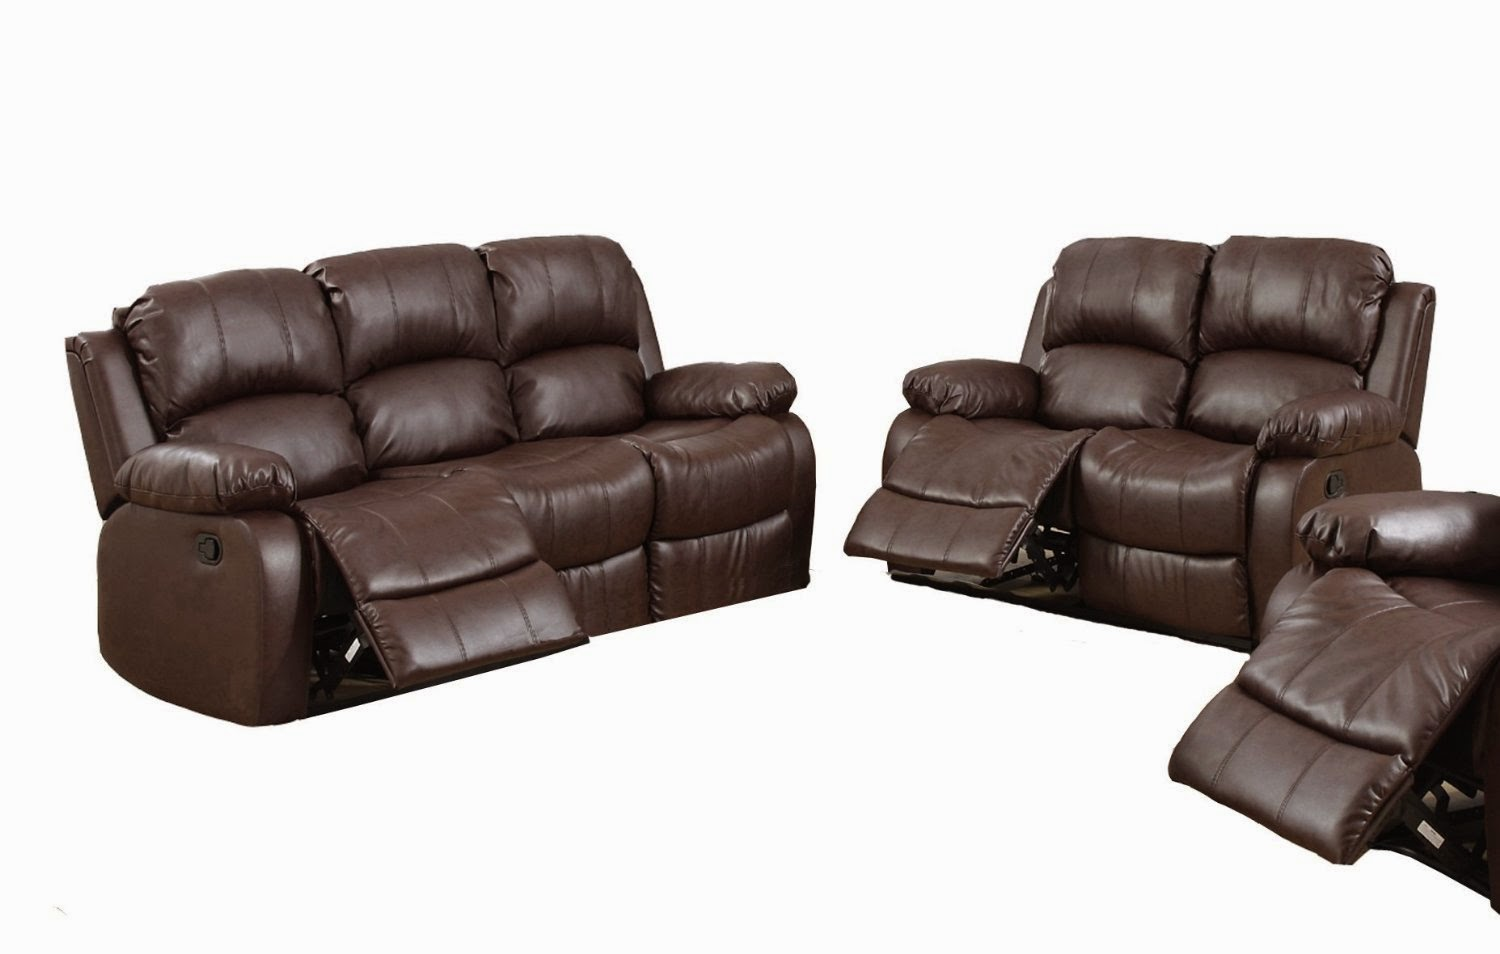 Cheap Recliner Chair Cheap Reclining Sofa And Loveseat Sets April 2015